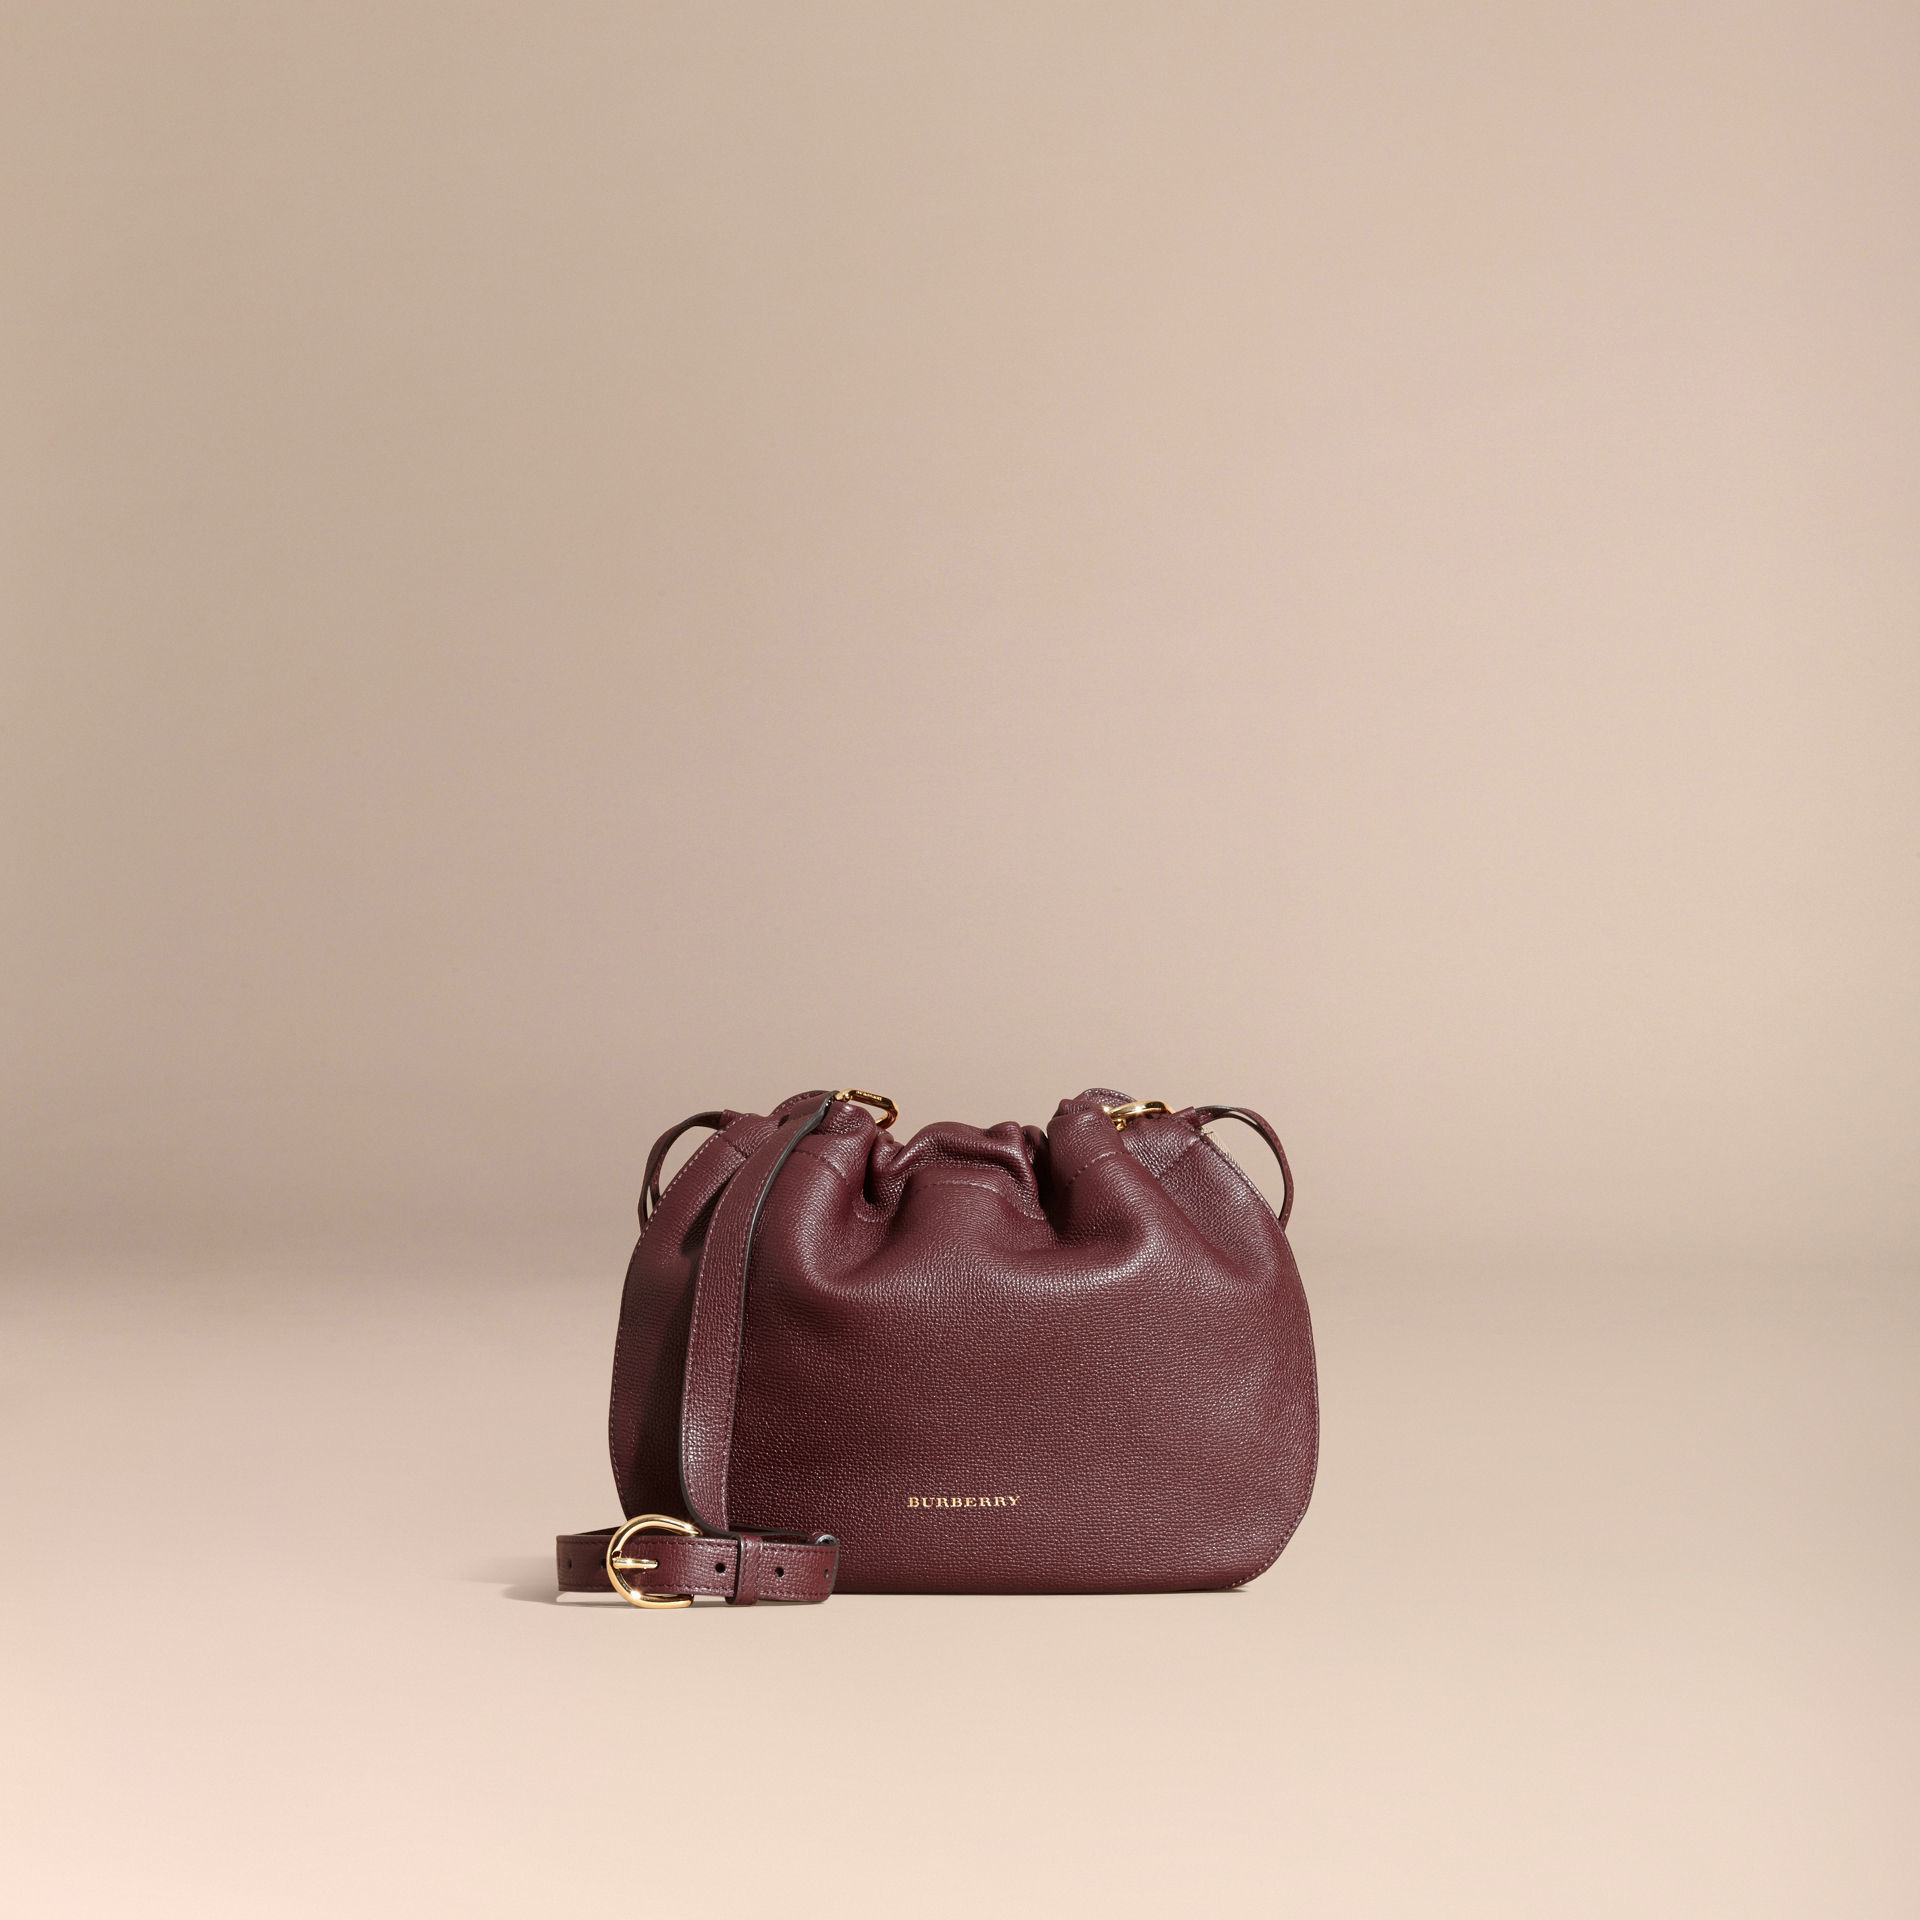 507a0b1855 Burberry Grainy Leather And House Check Crossbody Bag Mahogany Red ...